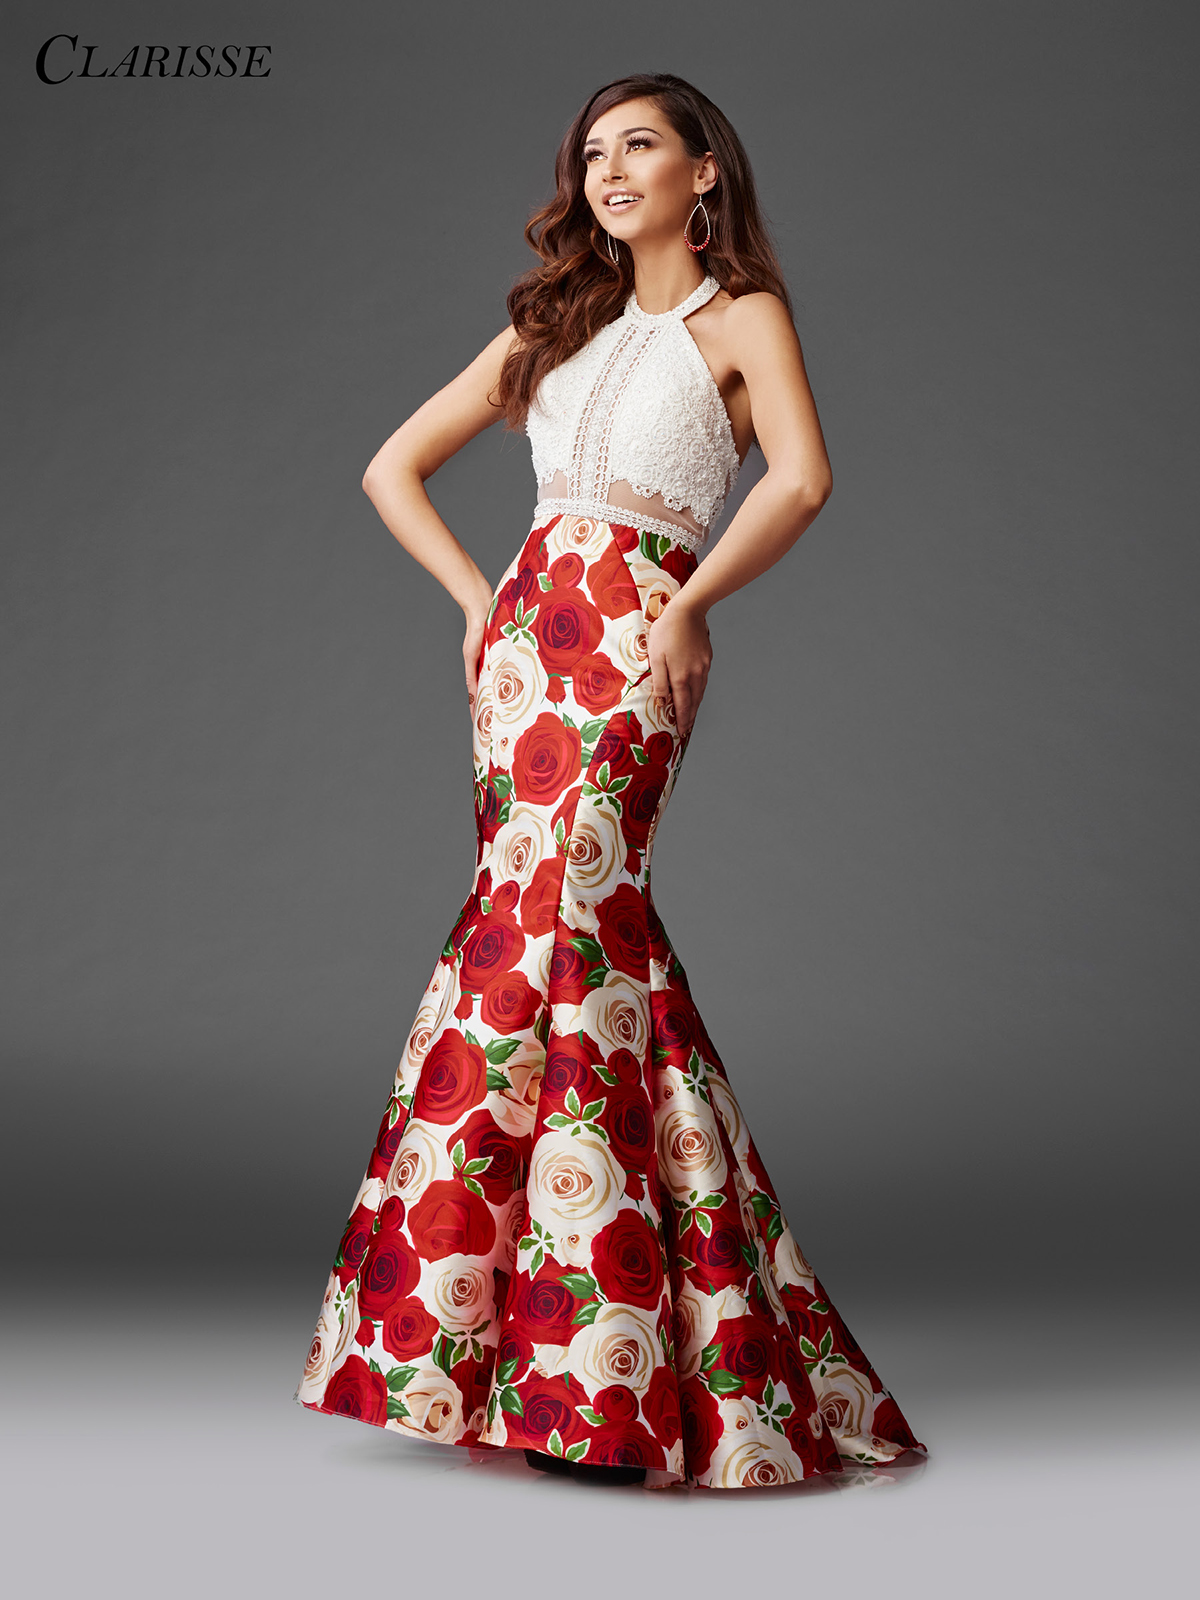 2018 Prom Dress 3423 | Promgirl.net